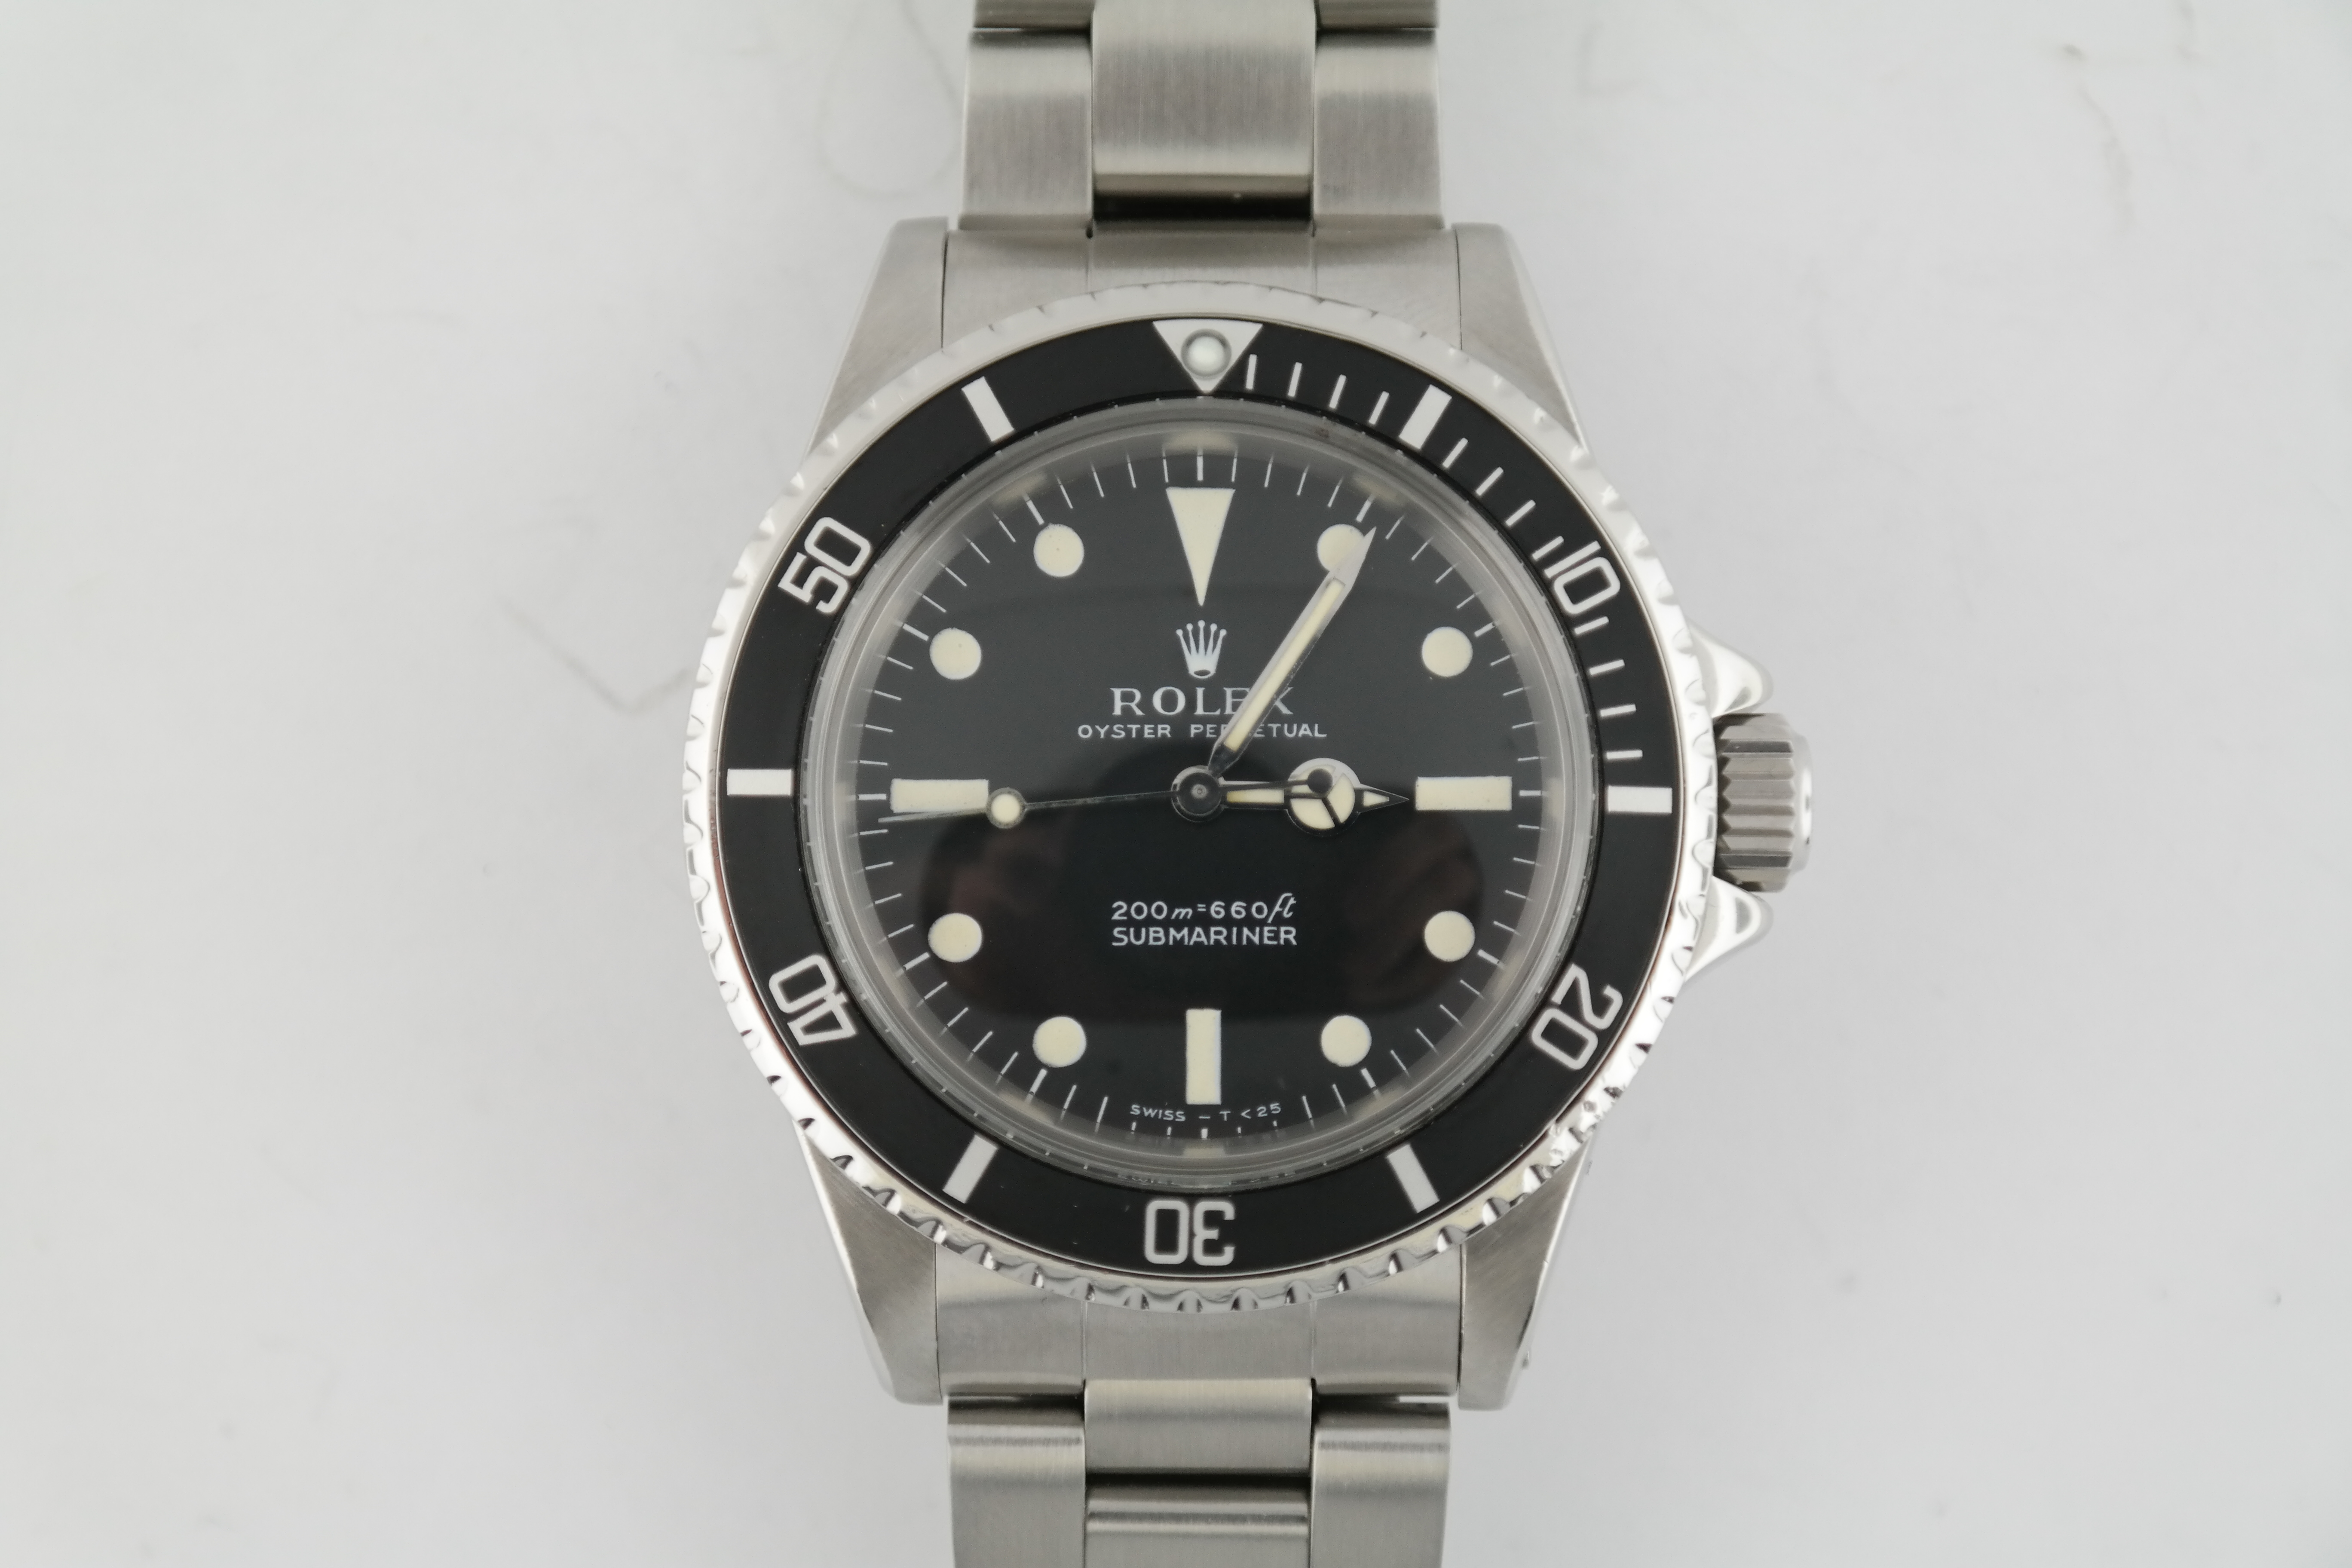 Rolex Submariner 5513 Stainless Steel Meters First Matte Black Dial Buy Rolex Houston 713 521 4444 Sell Rolex Houston